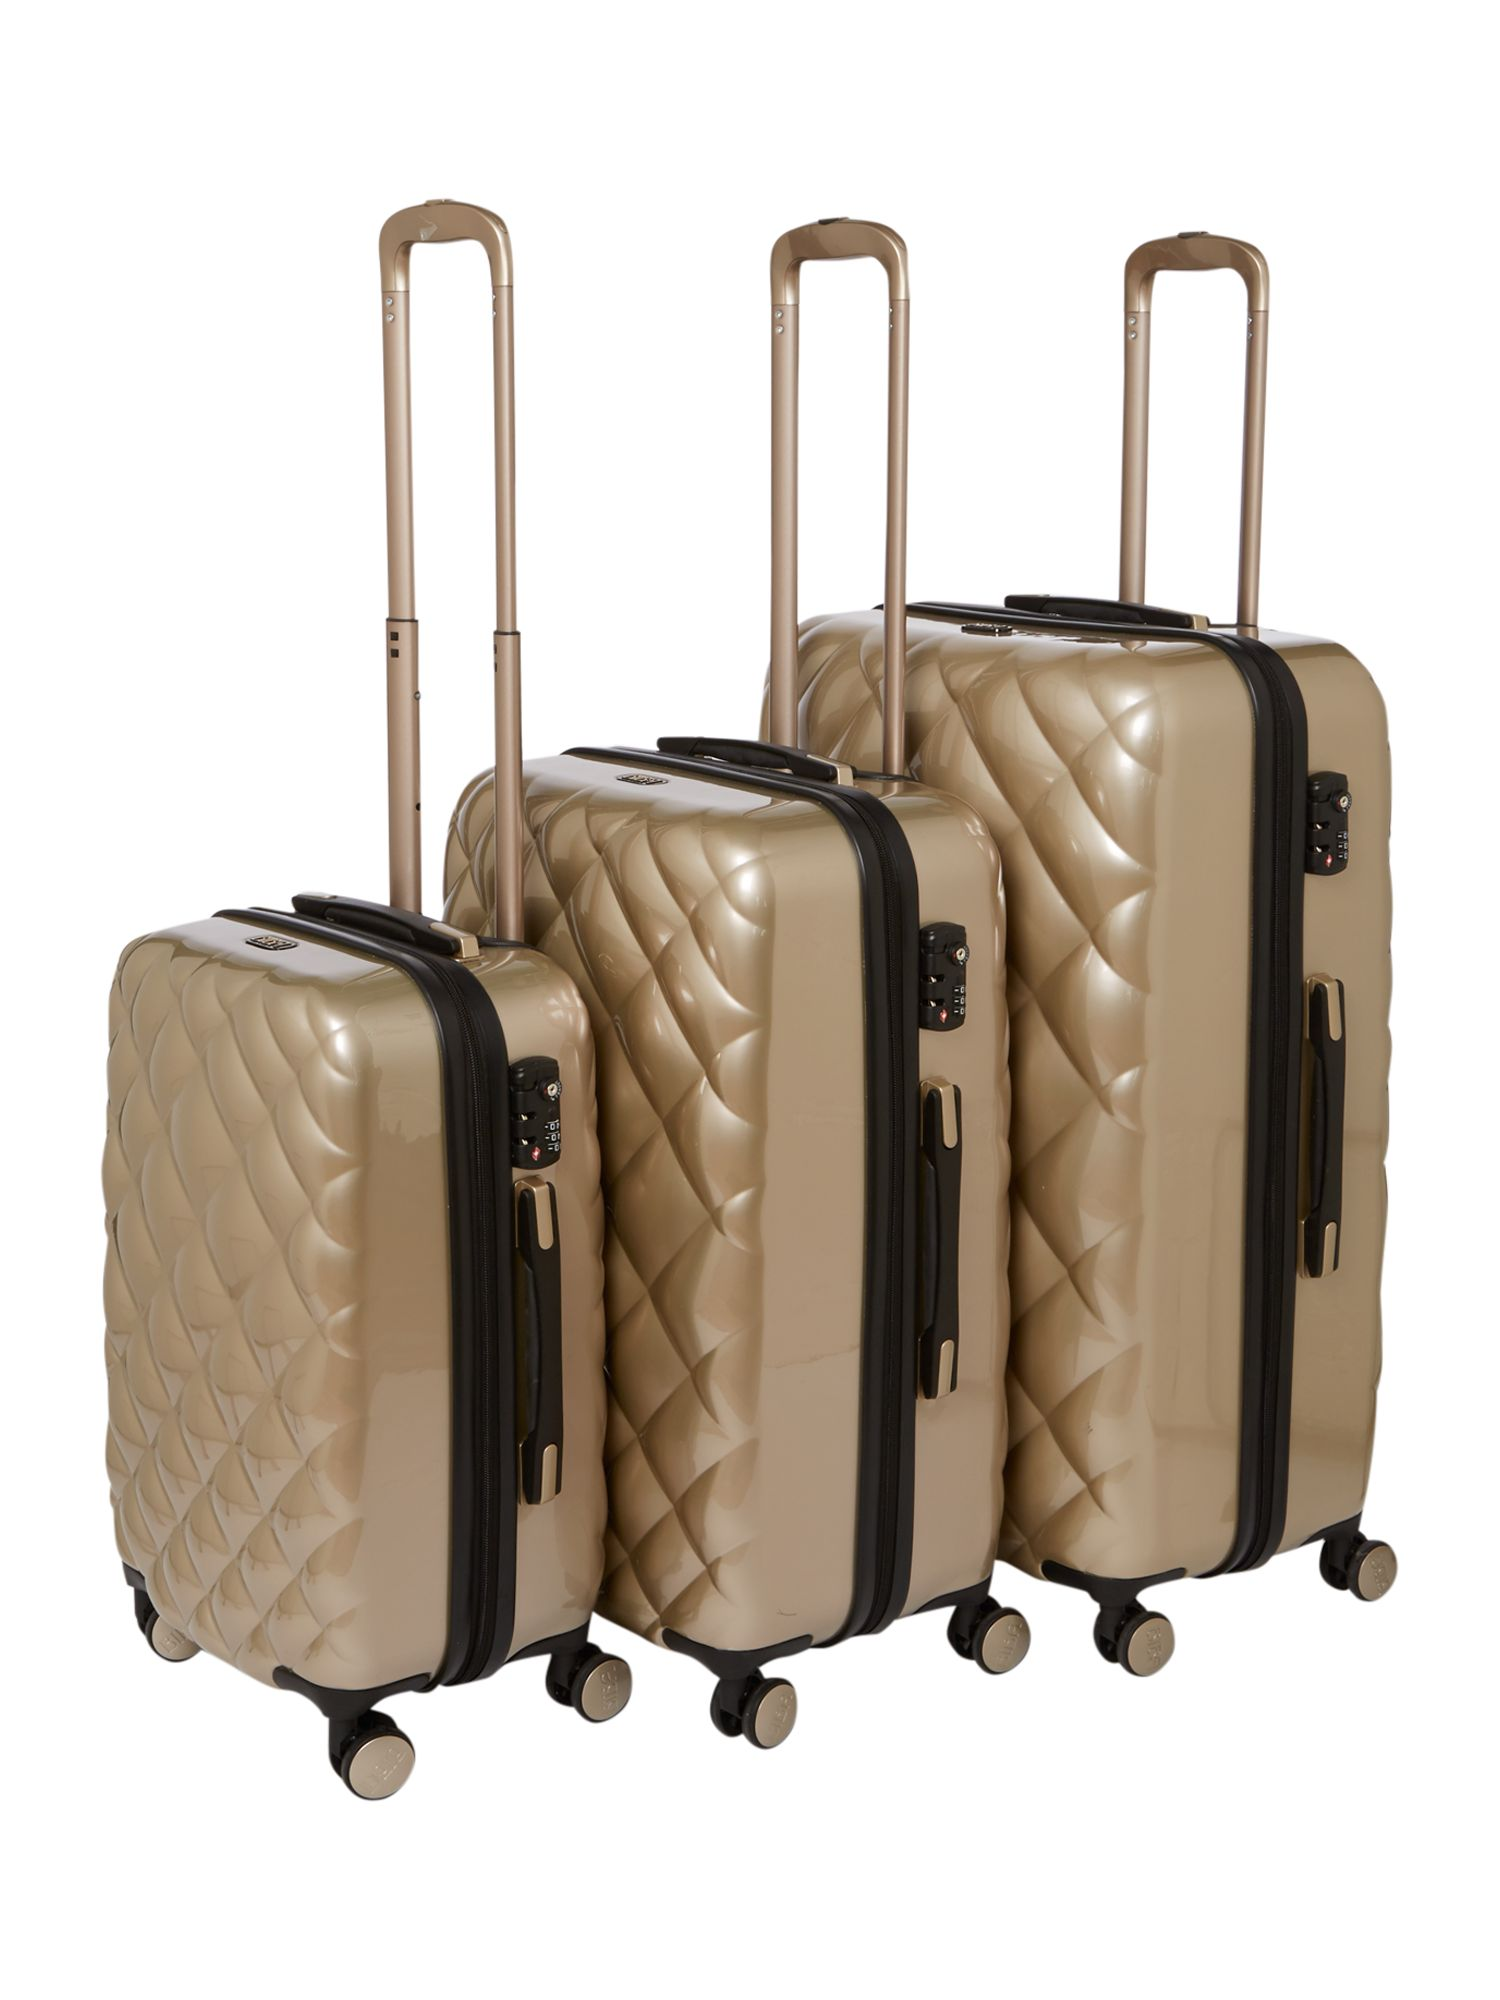 Biba Luxe Diamond Quilt Oyster Grey Luggage - House of Fraser : it quilted luggage - Adamdwight.com